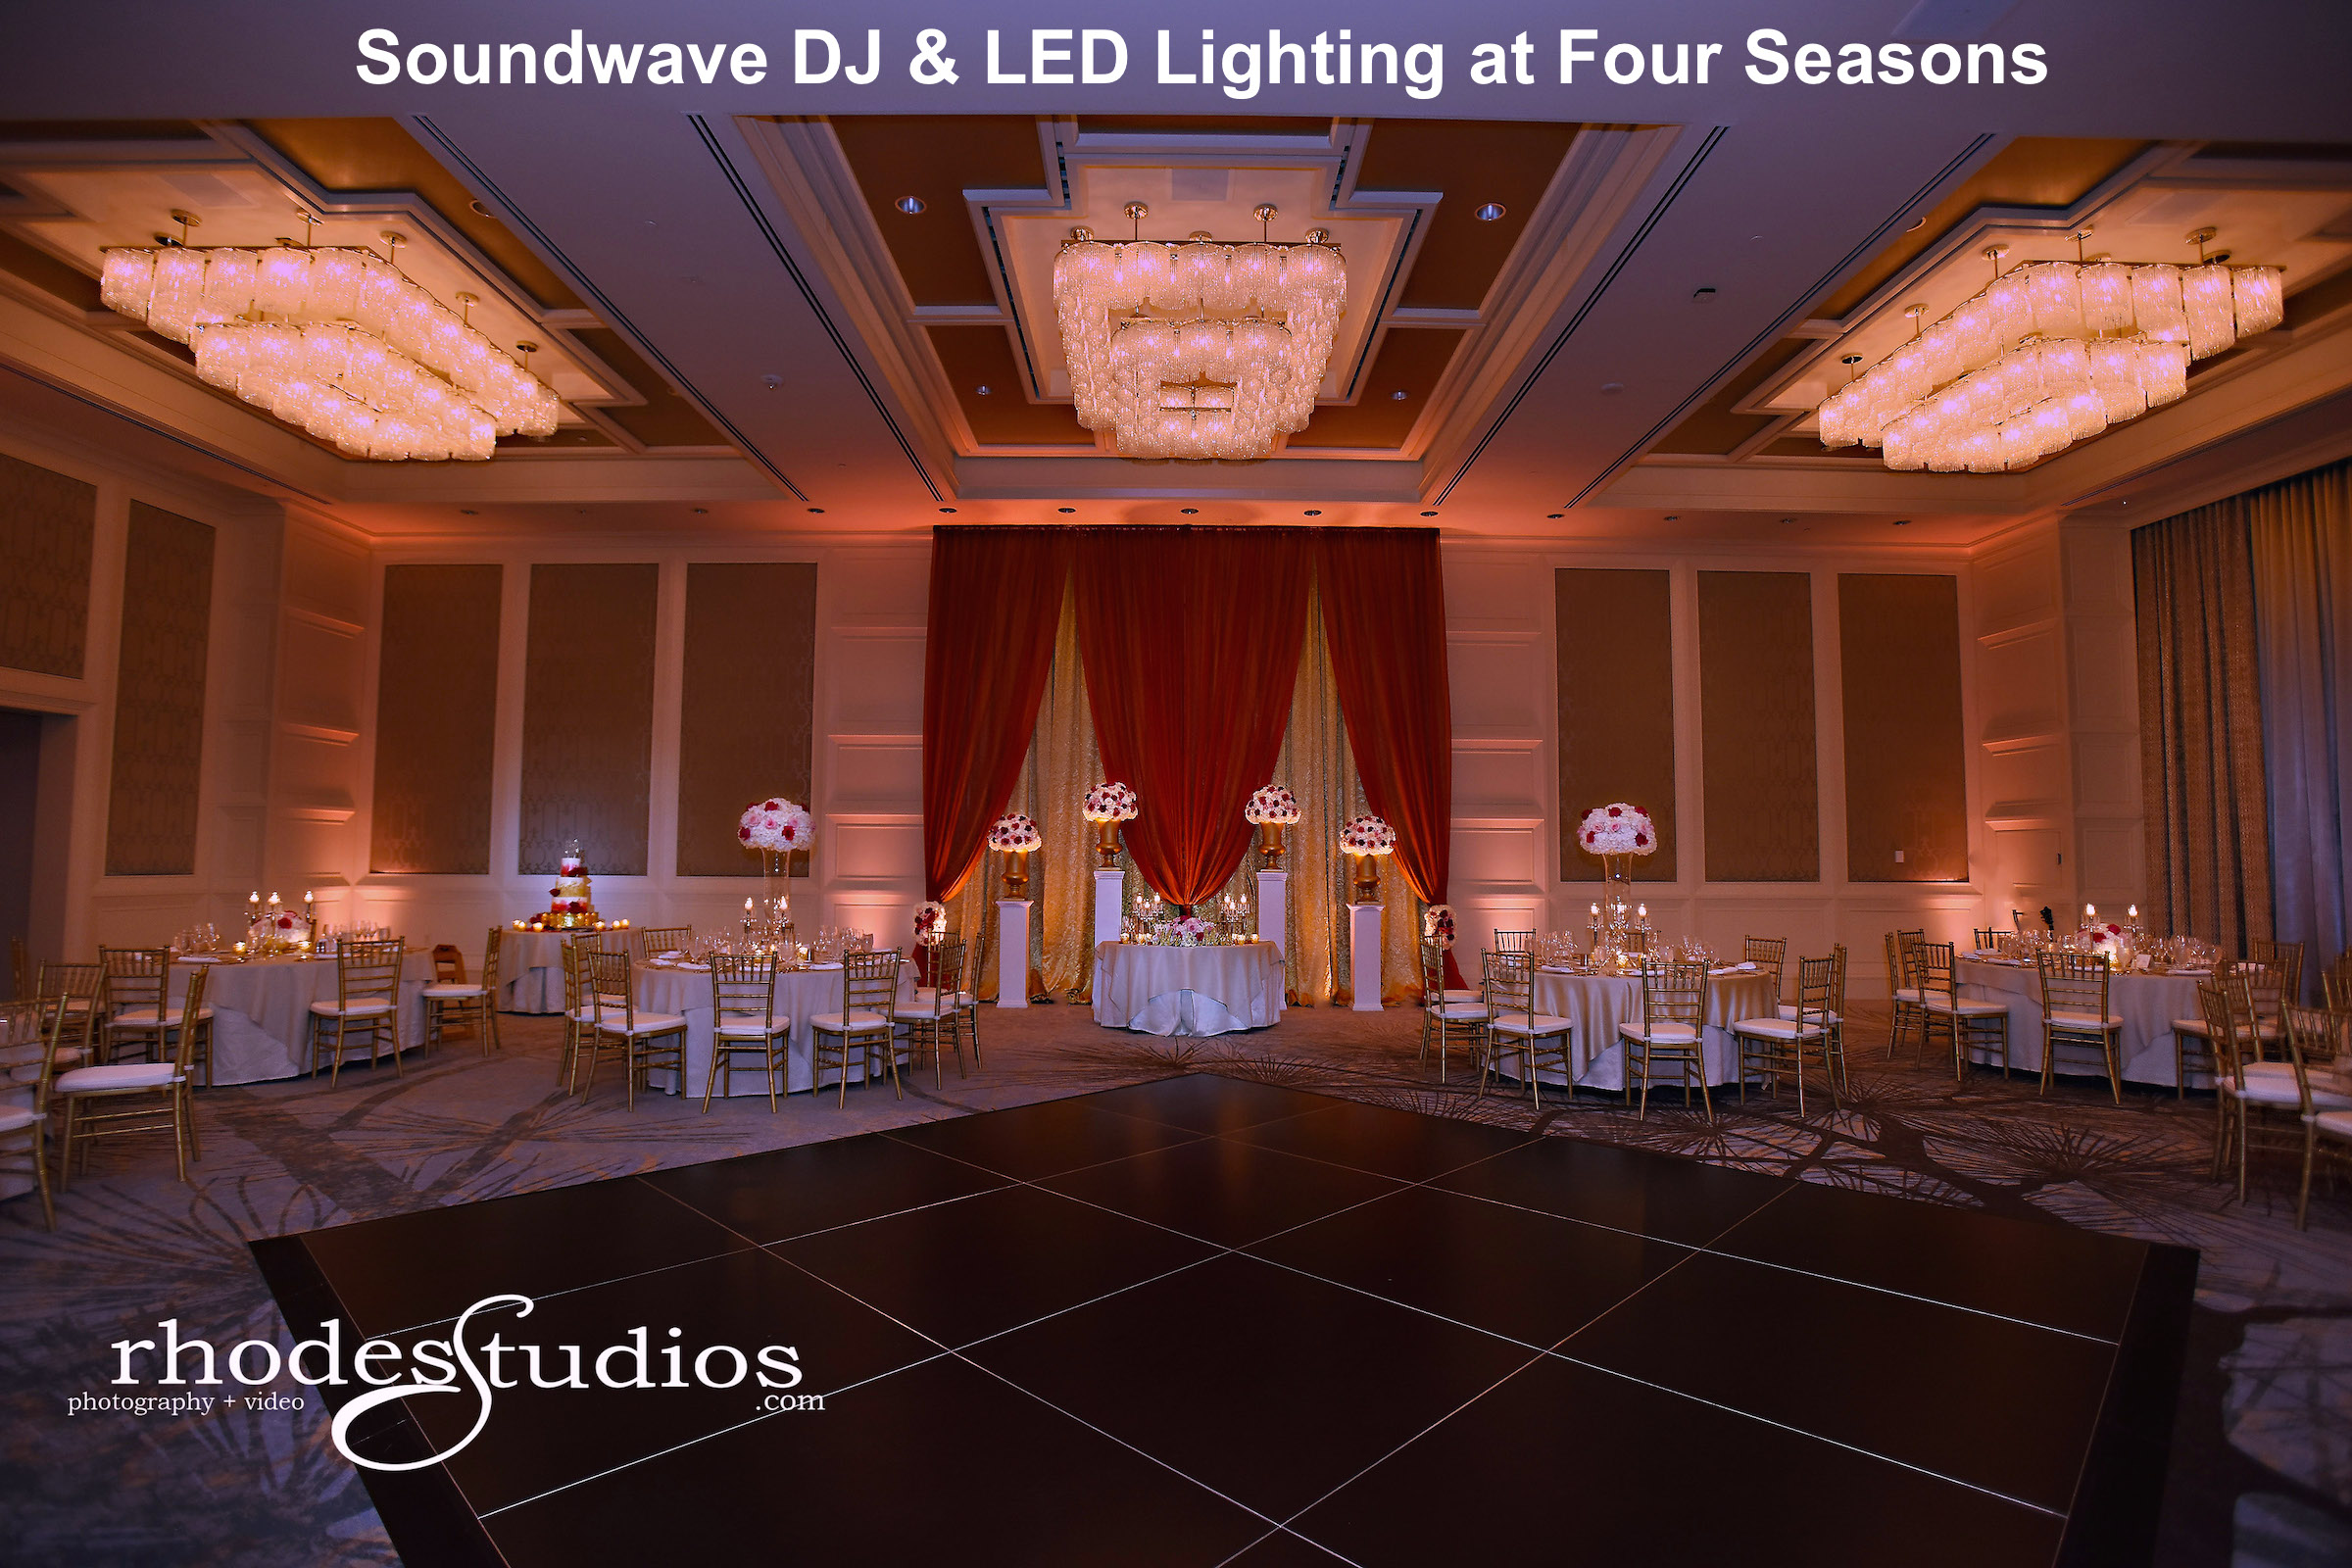 four seasons - orlando wedding venue - orlando wedding dis - orlando LED Lighting - soundwave